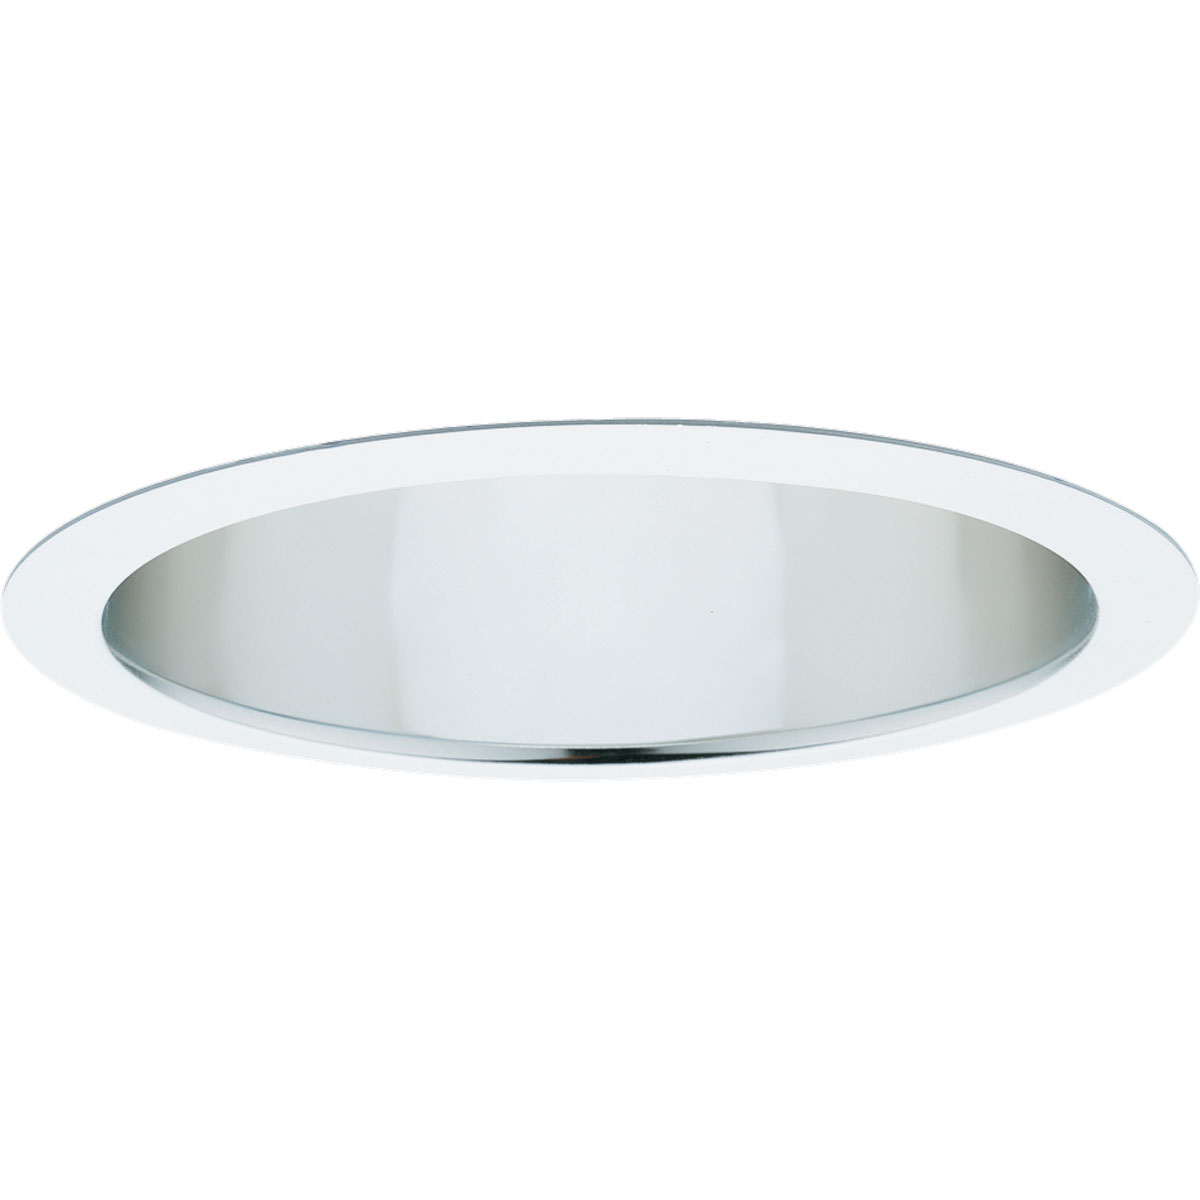 Recessed Lights Wall Washer : Progress Lighting (P8132-21) Wall Washer Recessed Trim